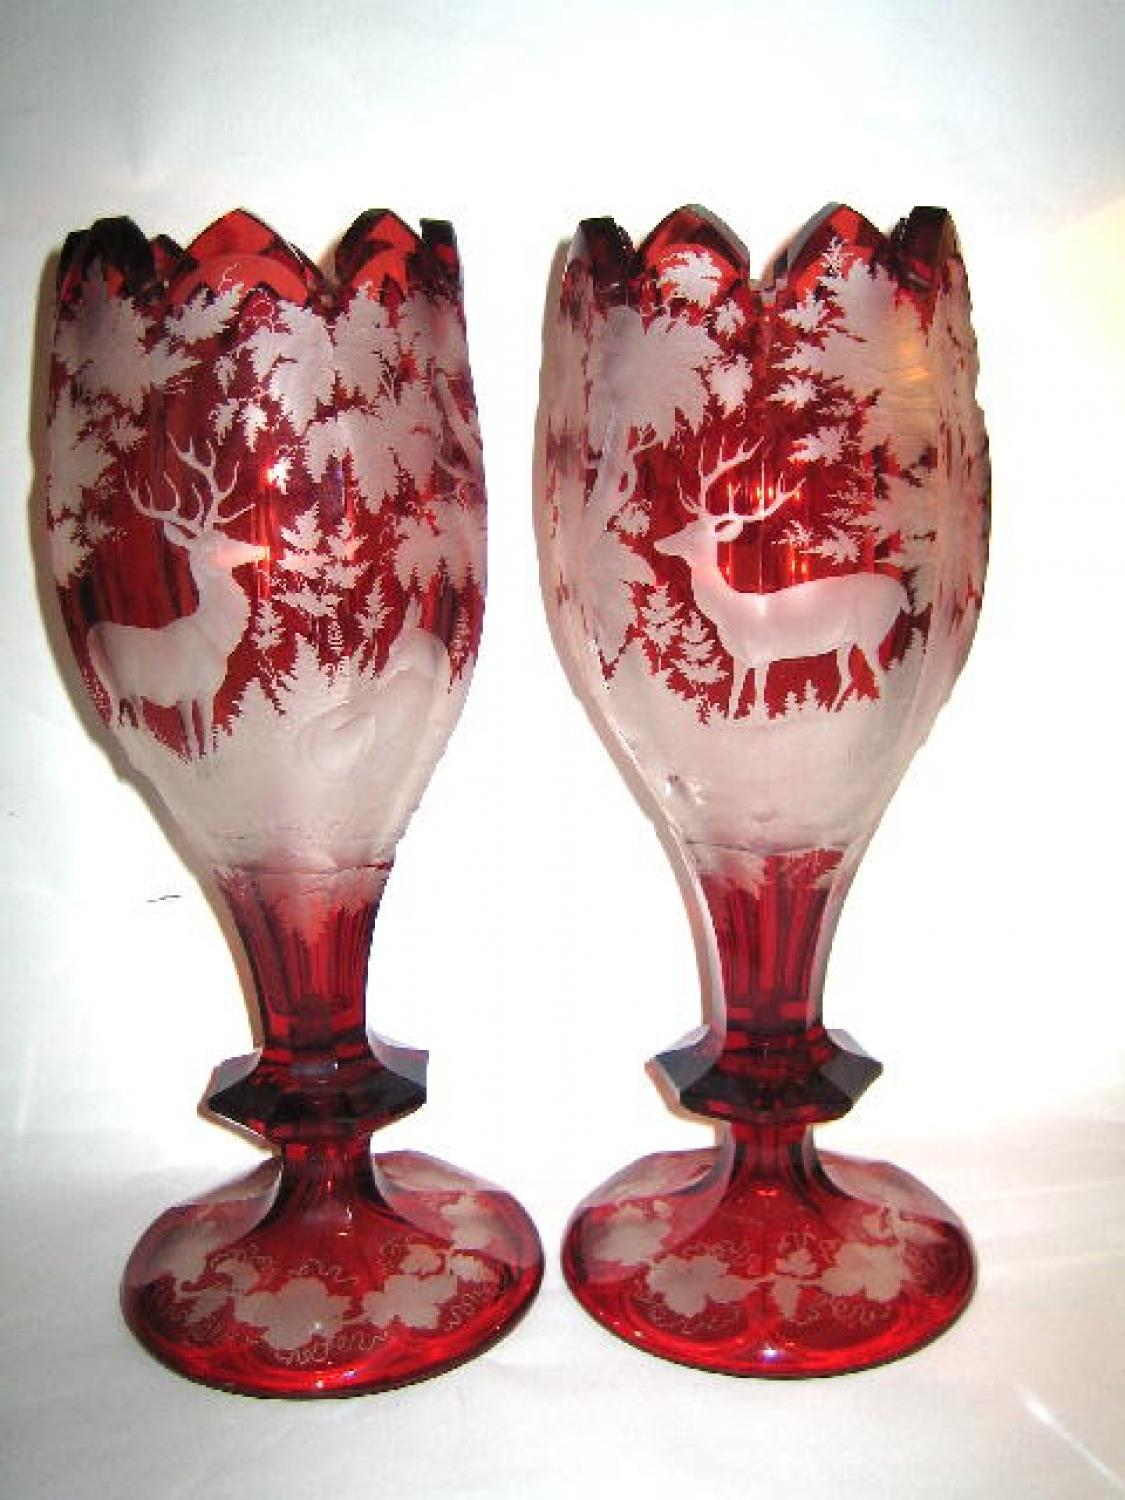 A Pair of Bohmian Ruby Red Deer Vases